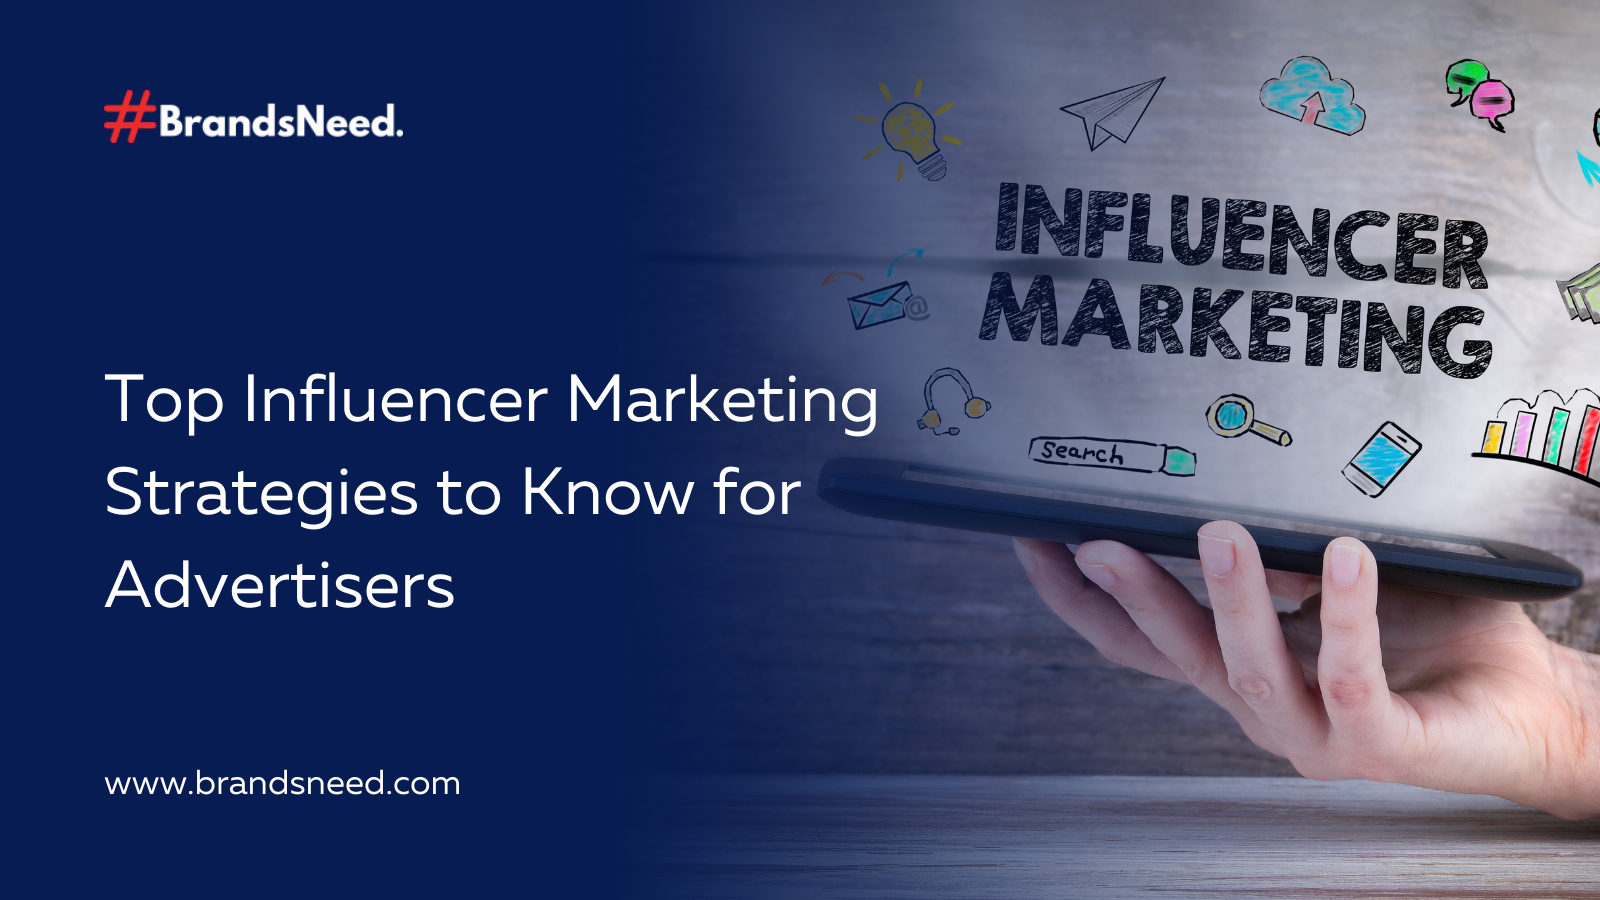 Top Influencer Marketing Strategies to Know for Advertisers